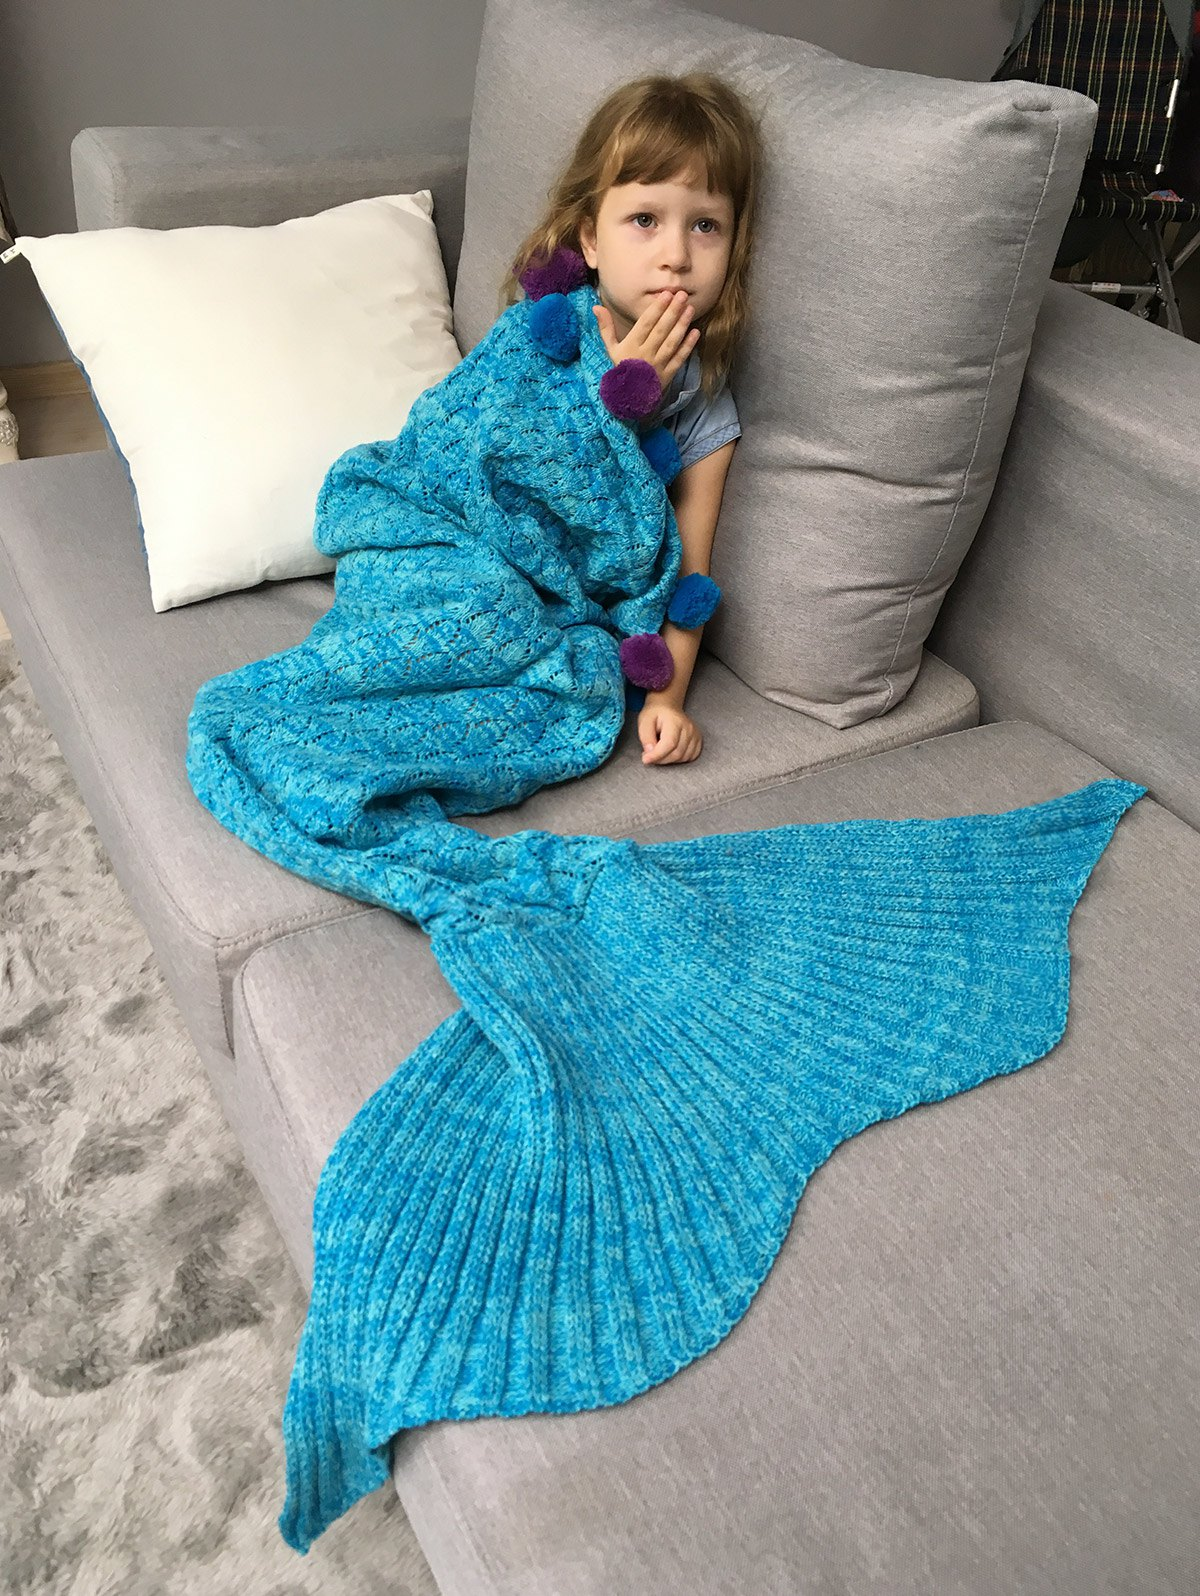 Fashion Pineapple Crochet Mermaid Blanket Throw with Pom Ball For Kids